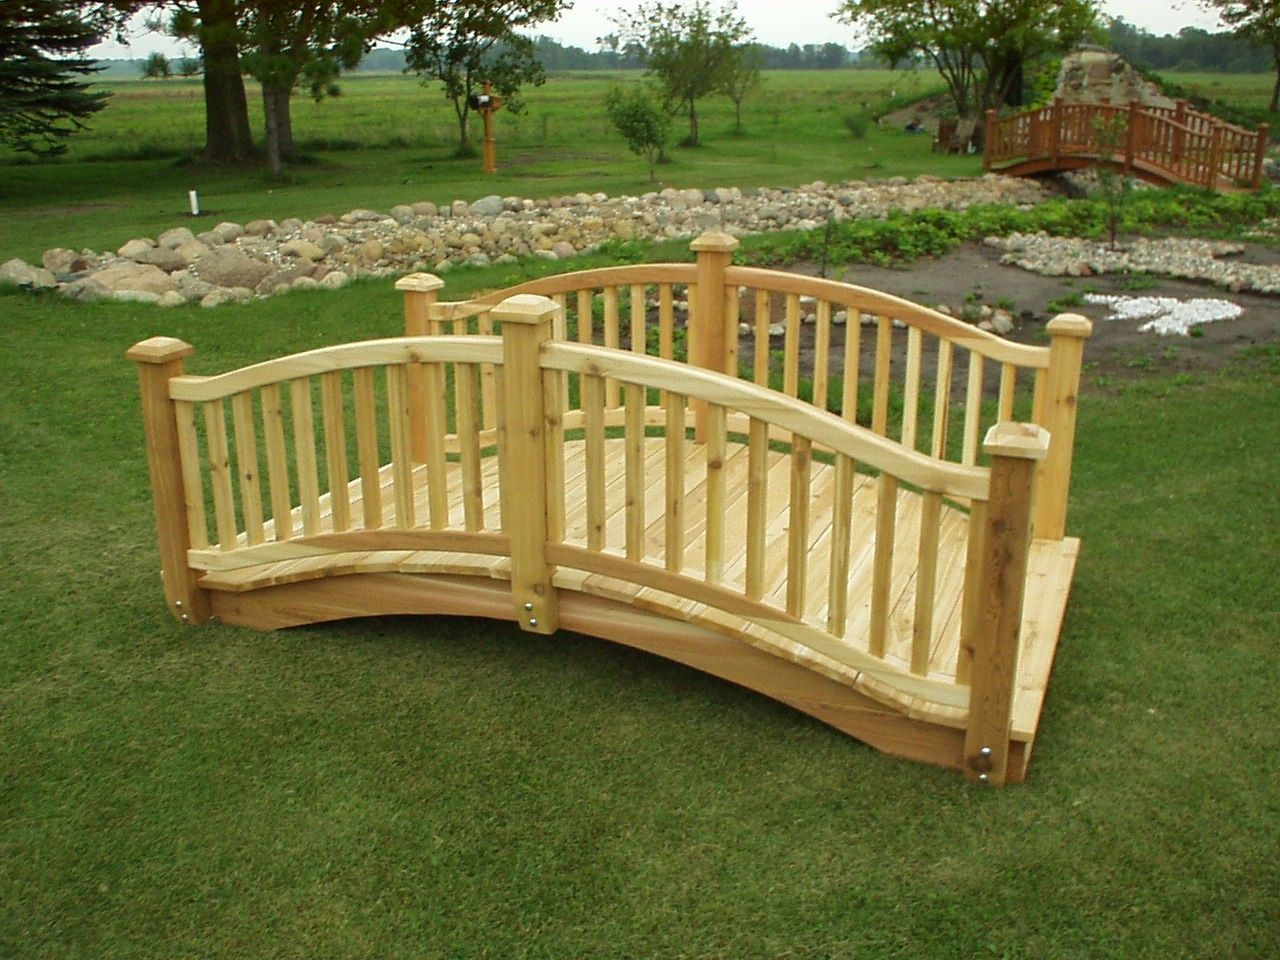 Best Garden Bridge Ideas On Pinterest Pallet Bridge Dream - Garden bridges